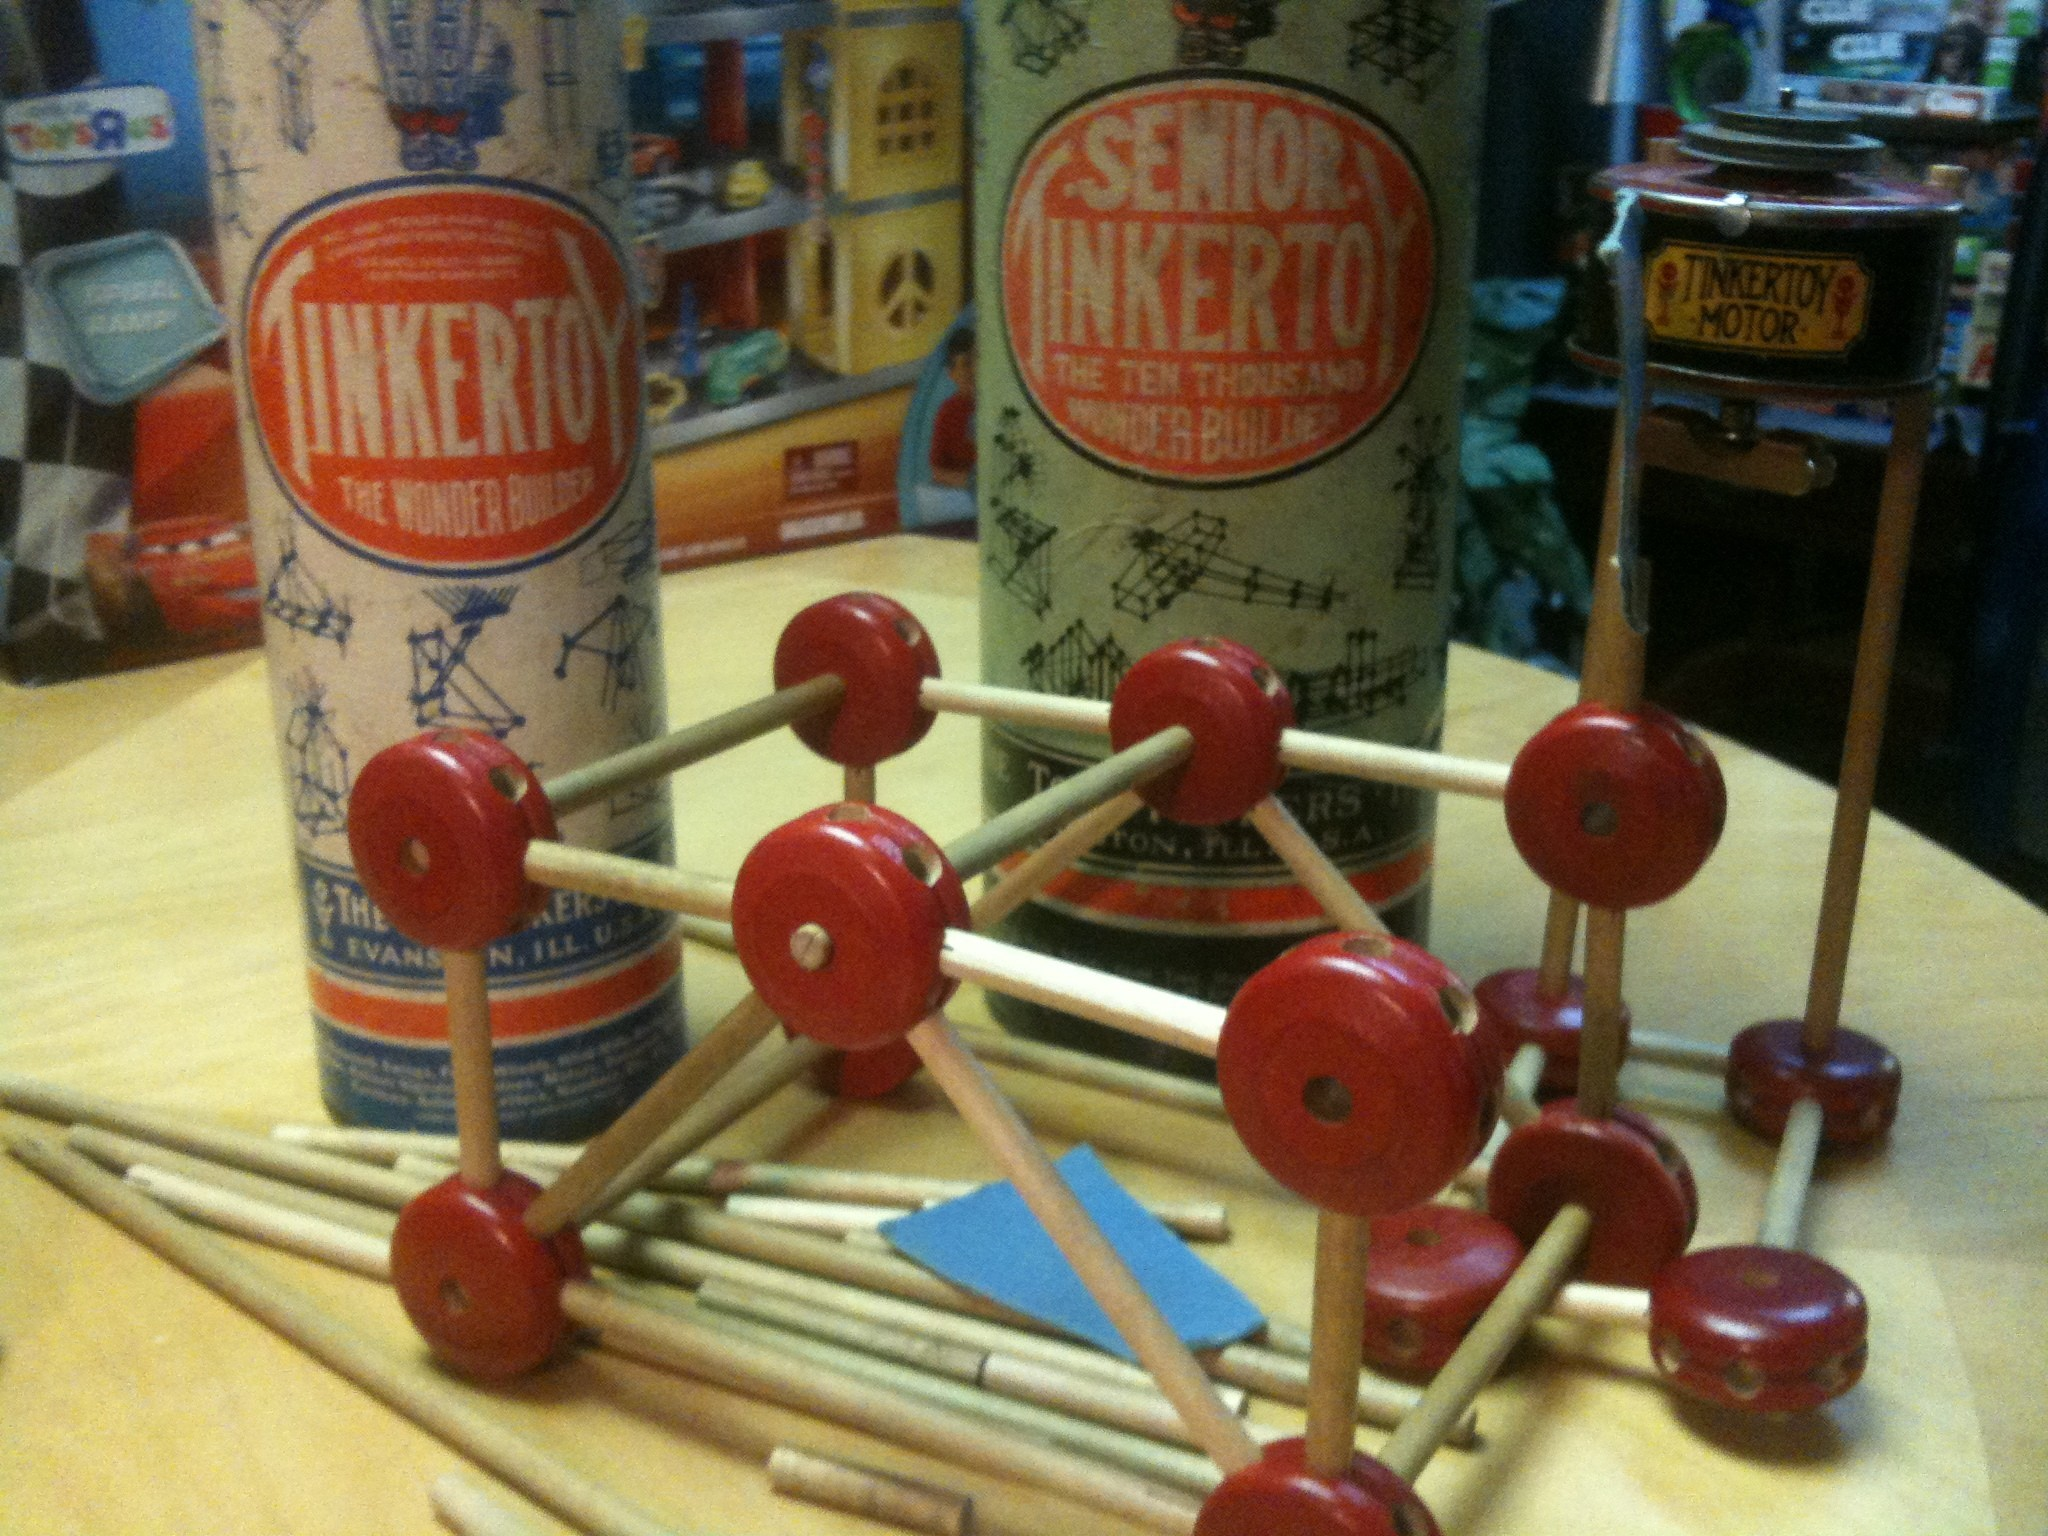 2014-07-31-TINKERTOYS_original.jpg